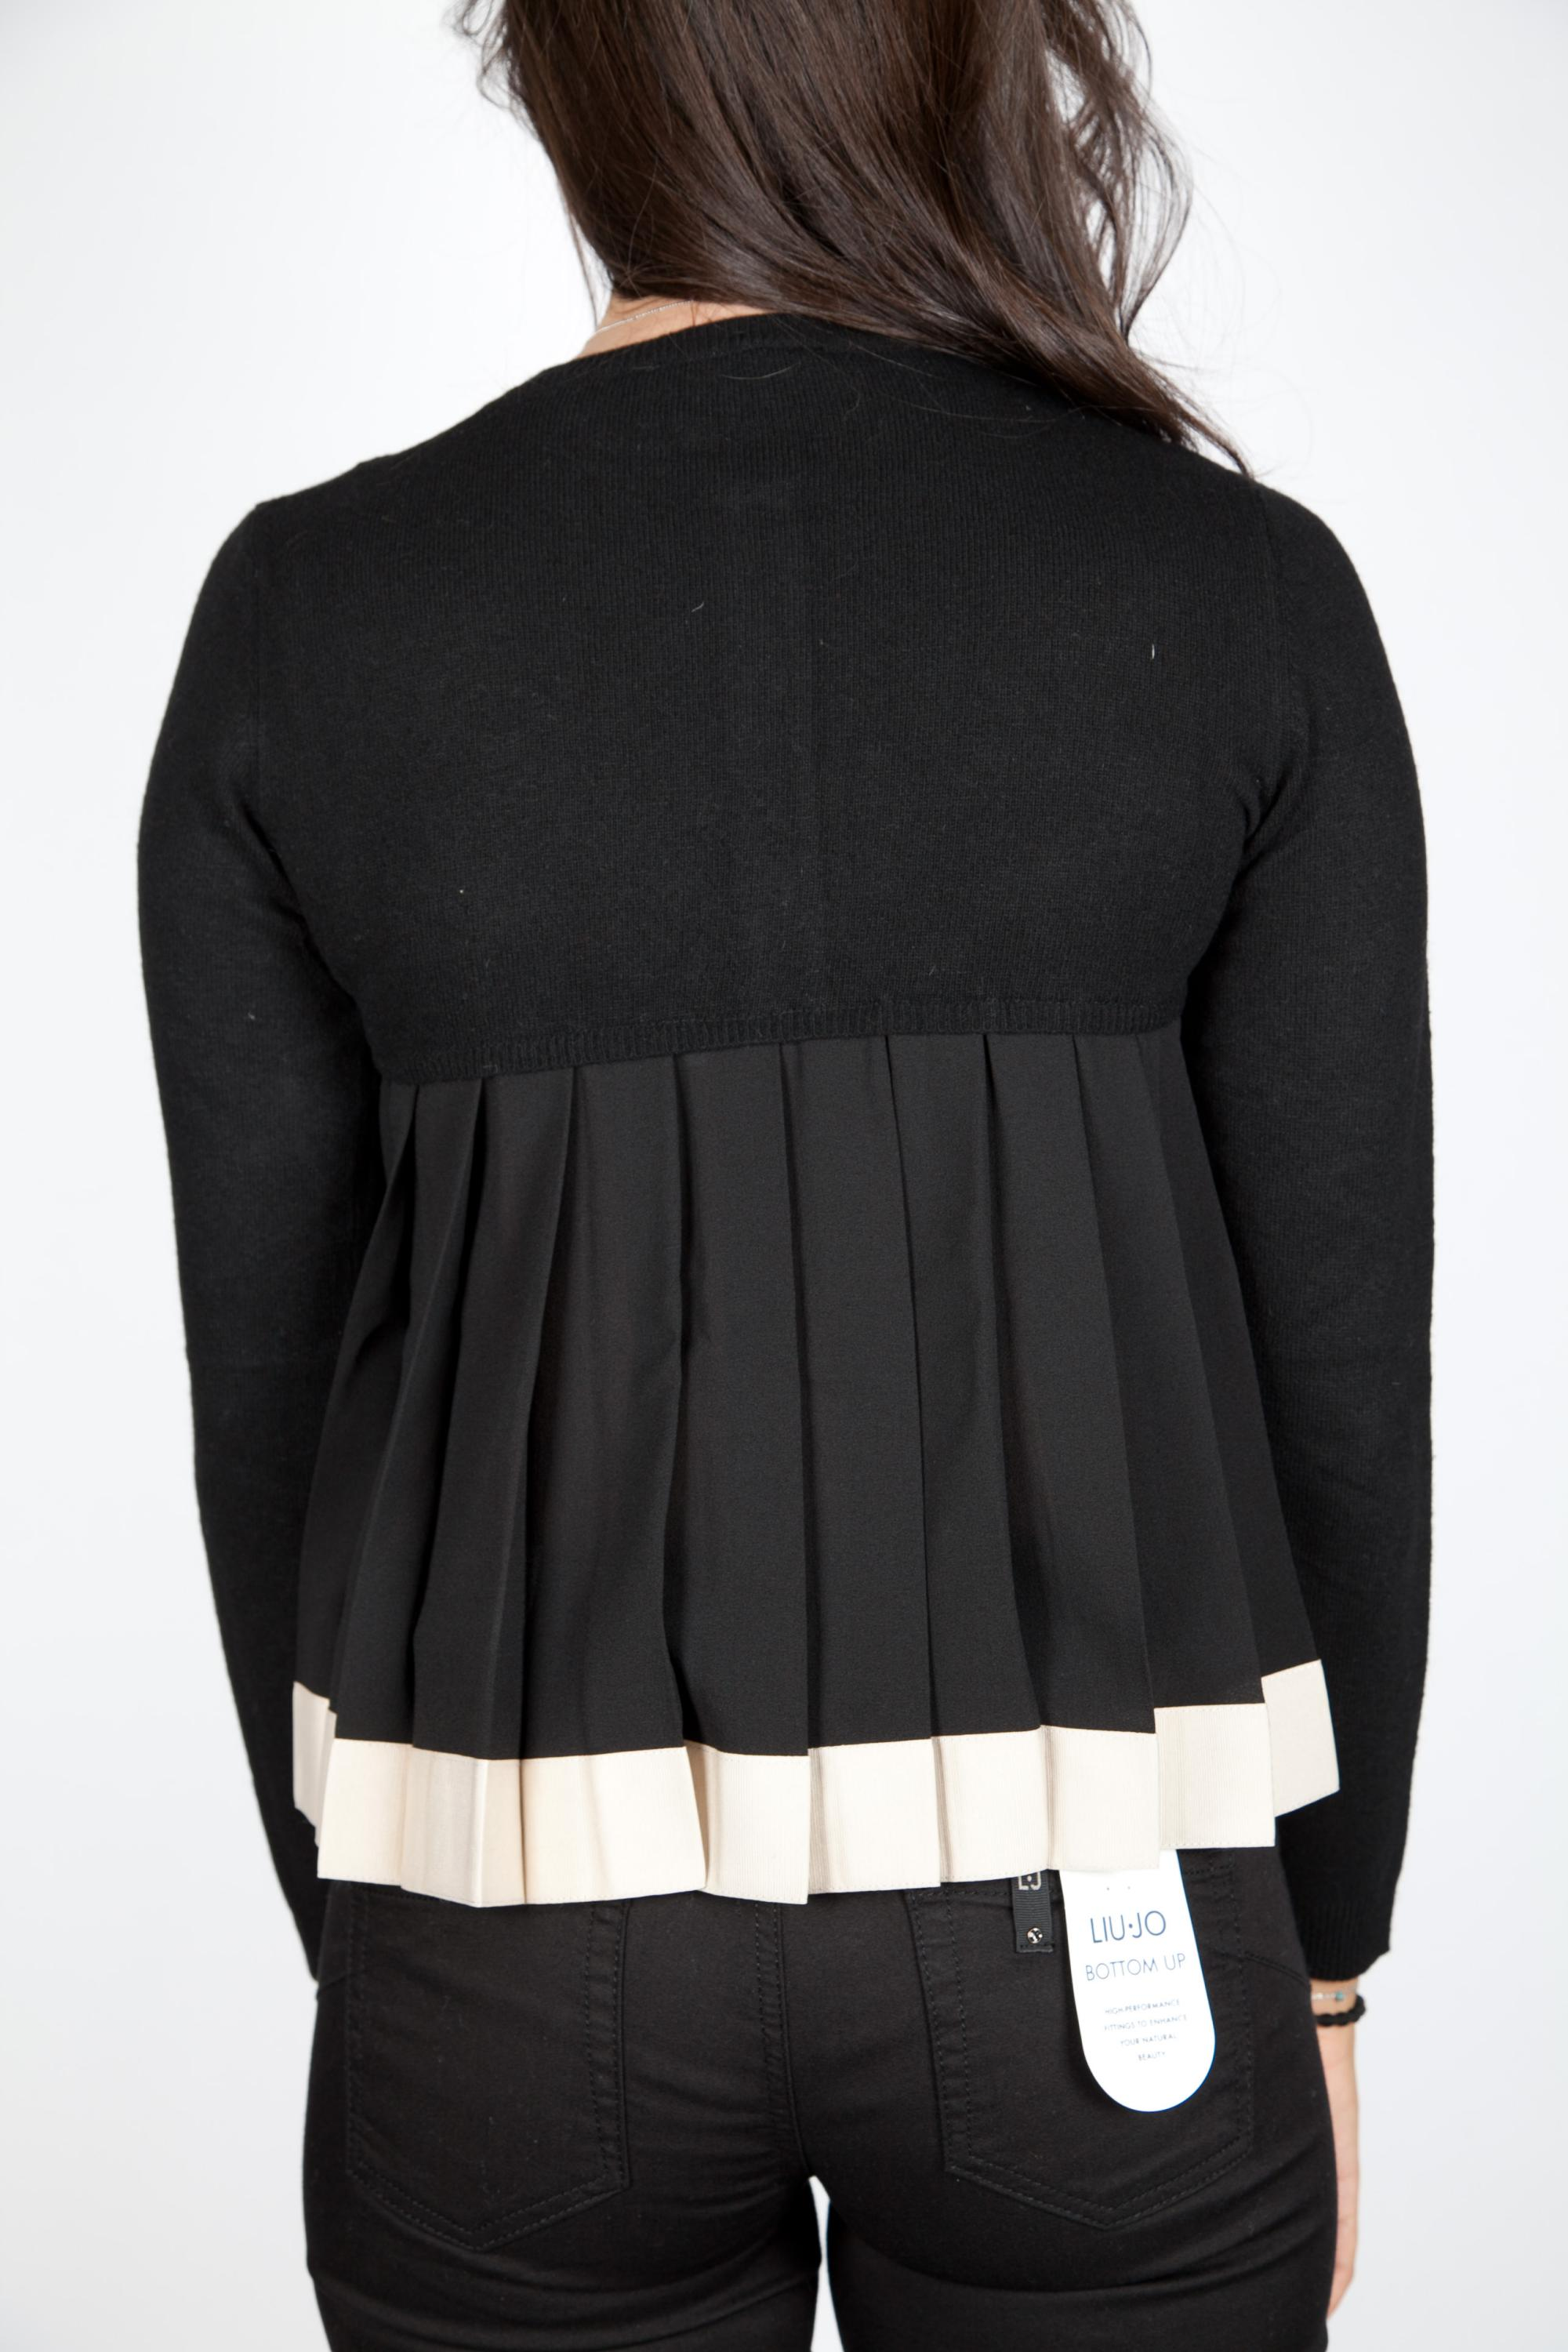 KNITWEAR - Cardigans Kaos Cheap Sale Fast Delivery tK8EX4C6Zw